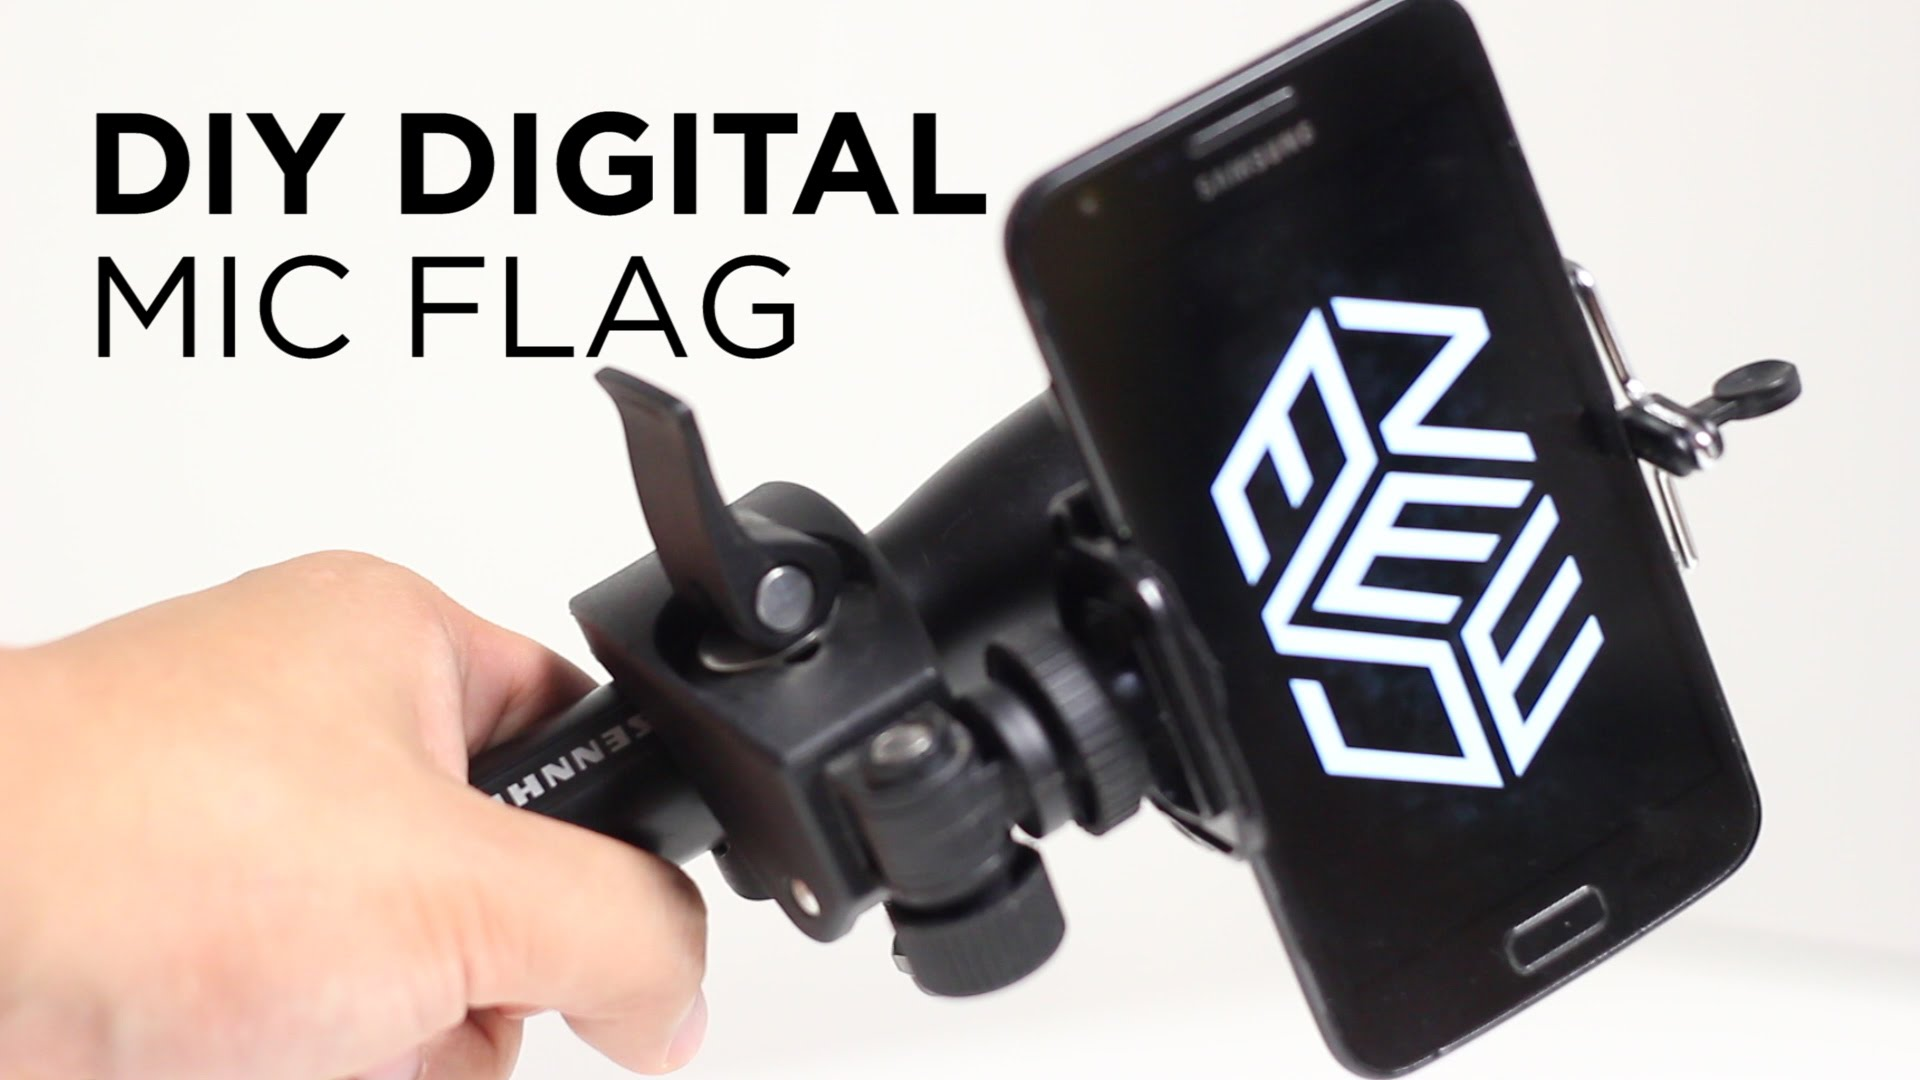 Digital mic flag